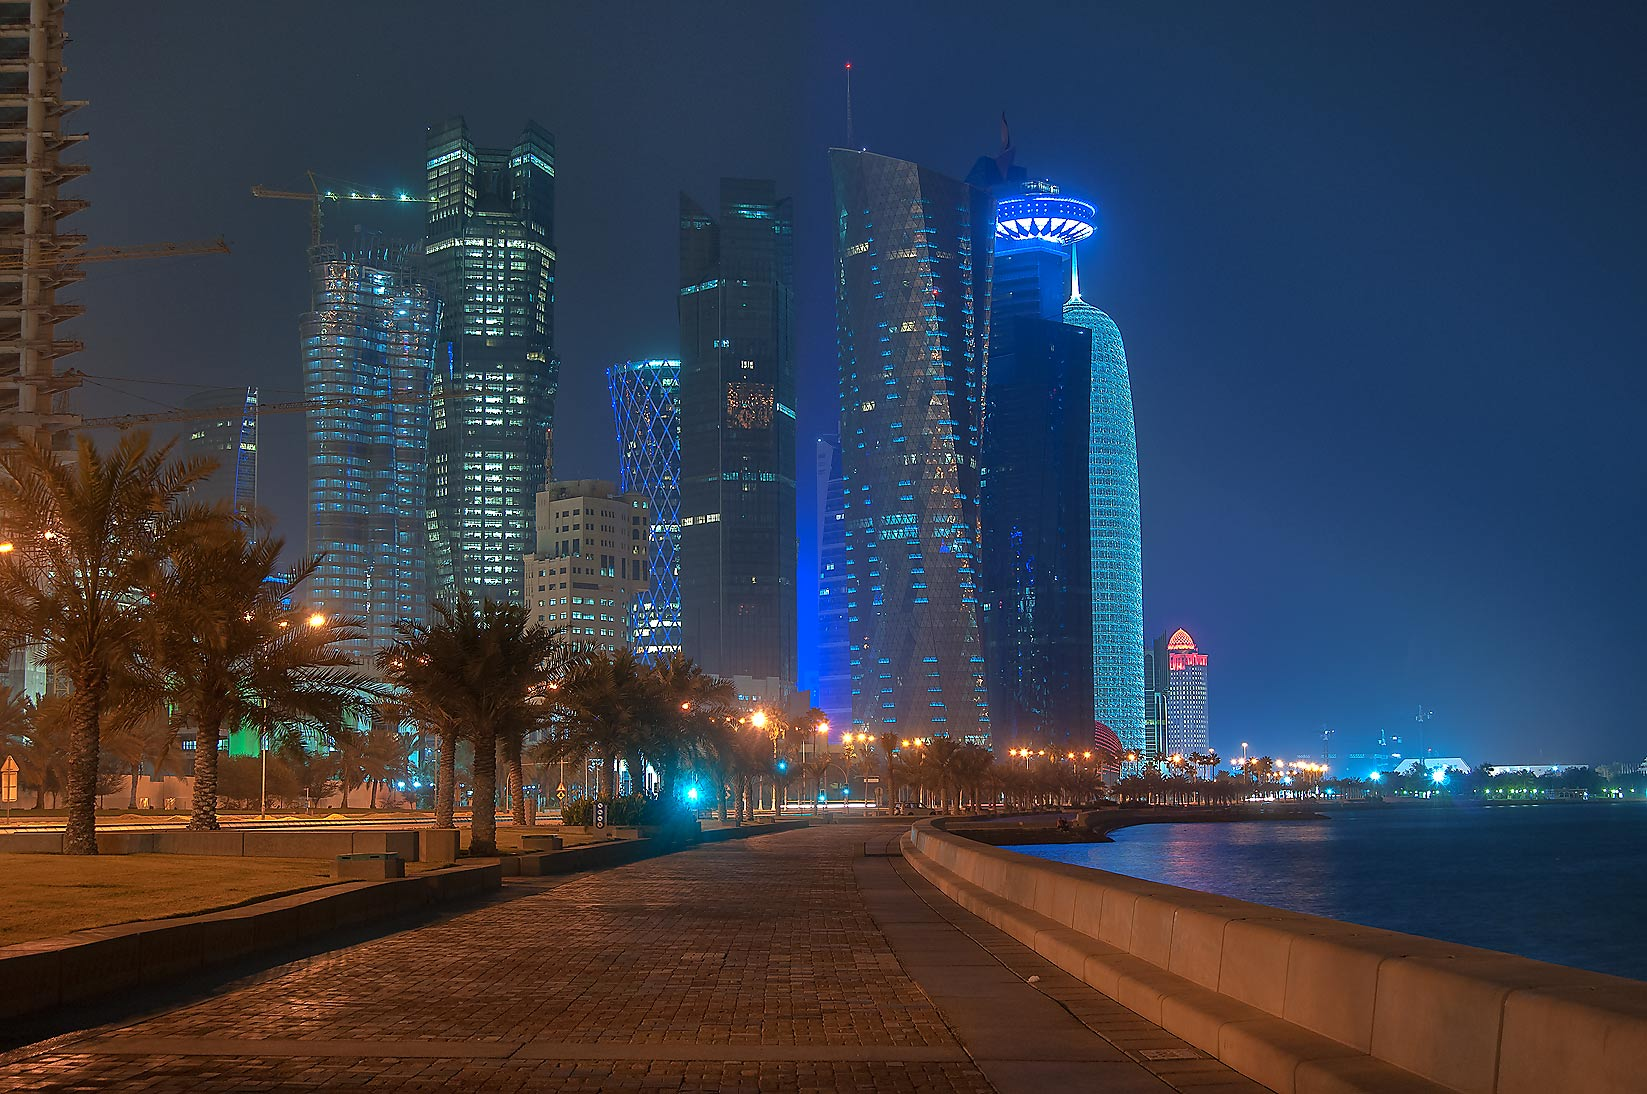 Corniche promenade near West Bay. Doha, Qatar